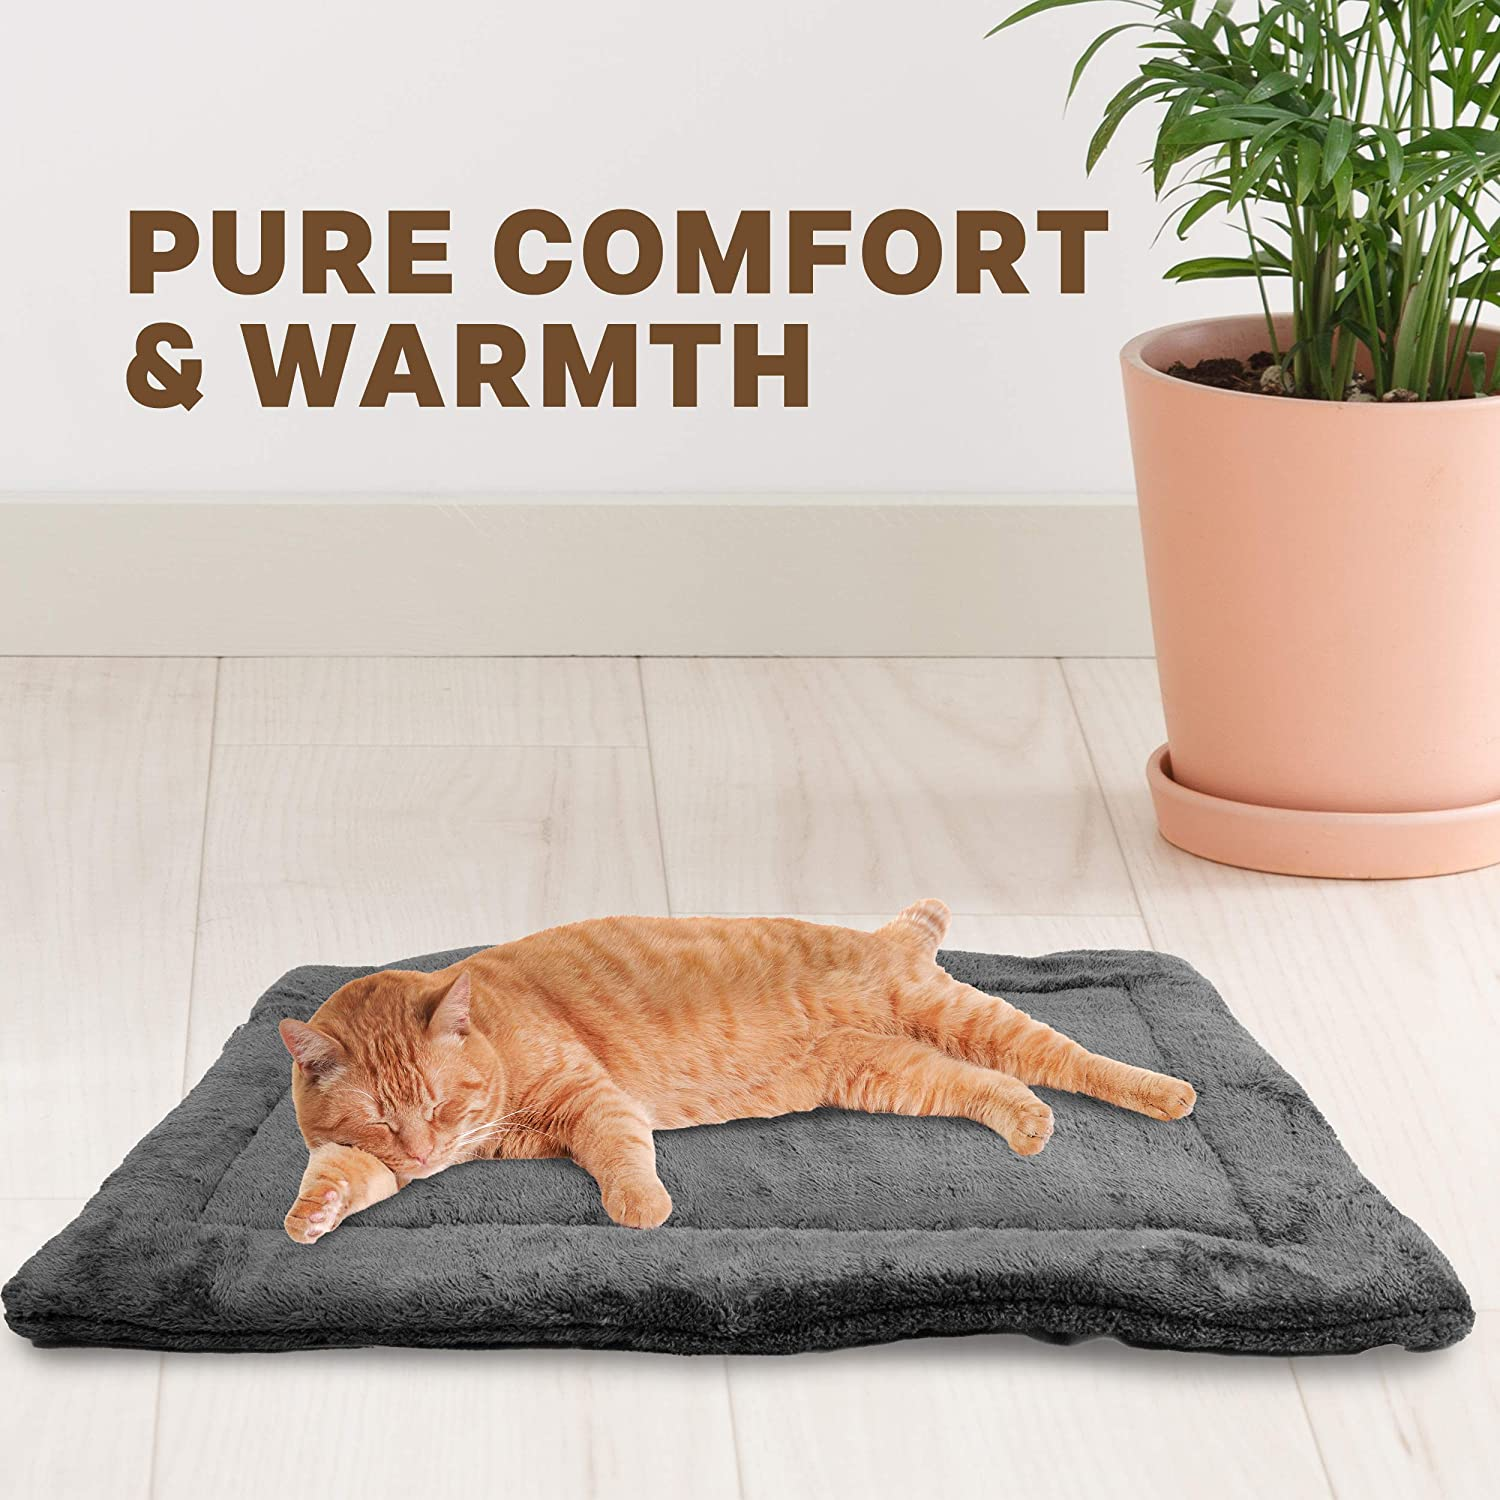 Medium Downtown Pet Supply Self-Heating Thermal Crate Mats with Handle Cats and Large Sizes and Pets Available in Grey and Brown with Small Warming Kennel Pads for Dogs